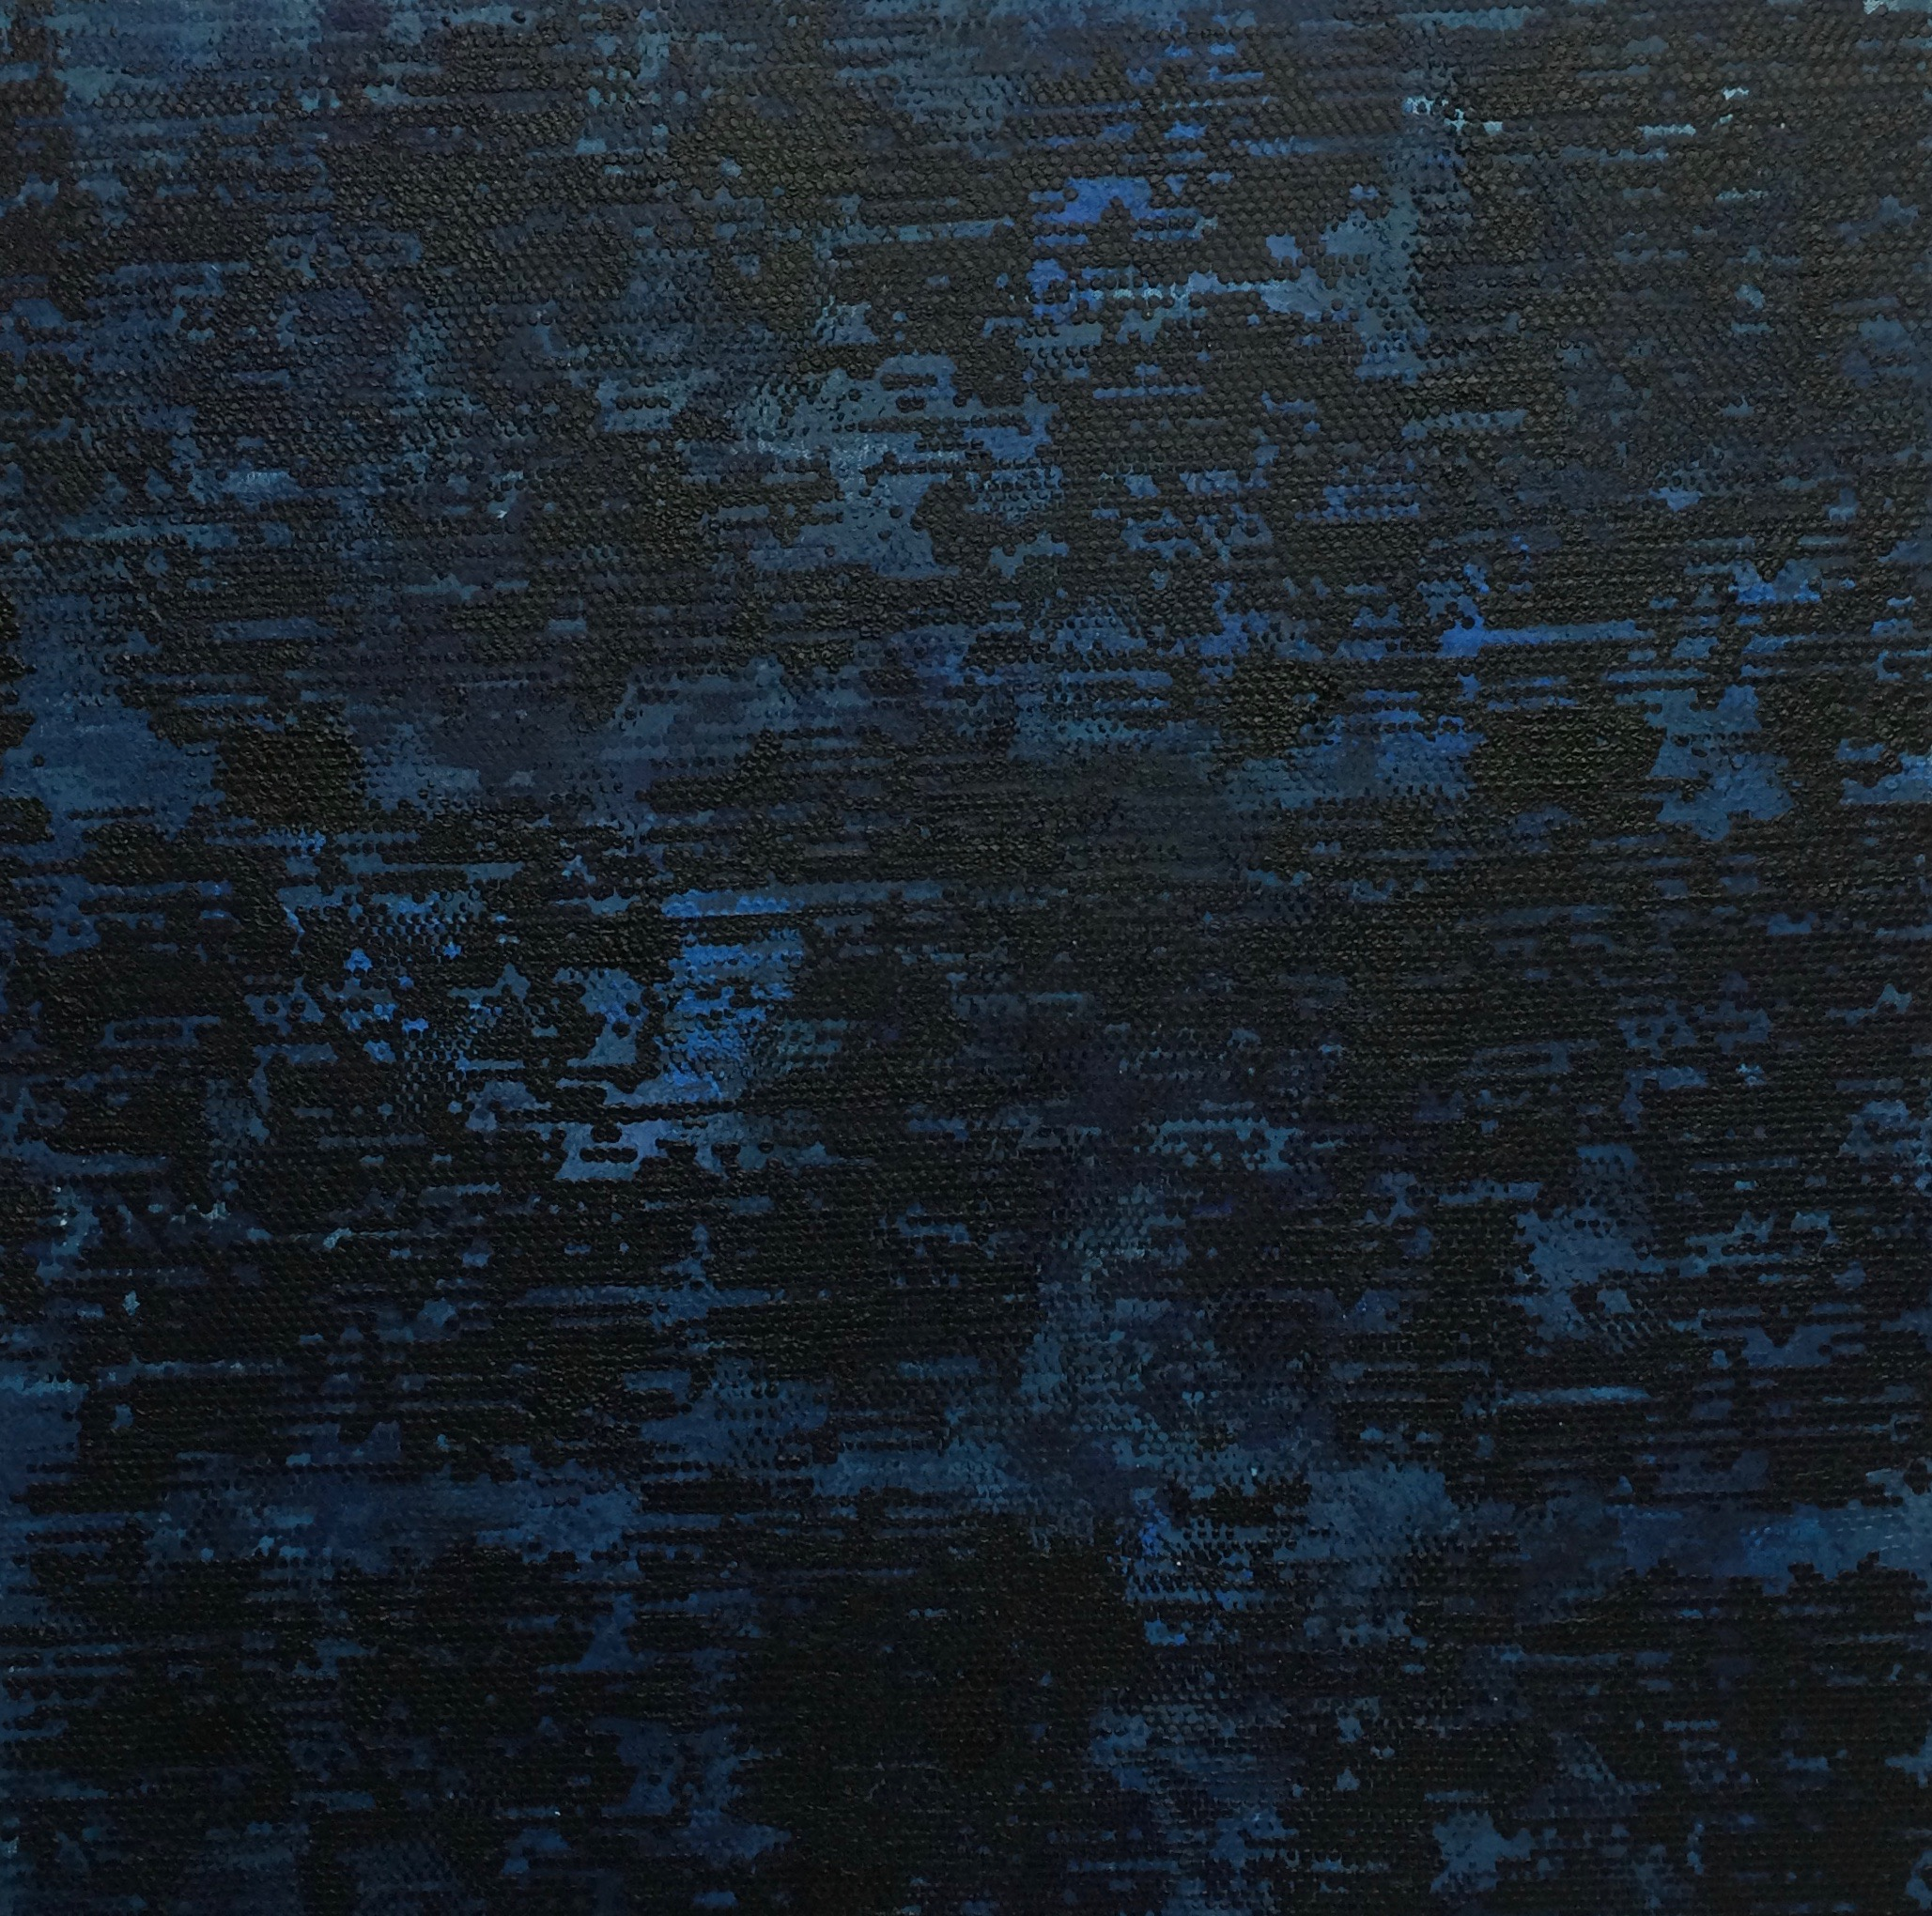 26. Manheimer_ Dark Blue Dot Matrix, 2014, 30%22 x 30%22, acrylic on canvas.jpg